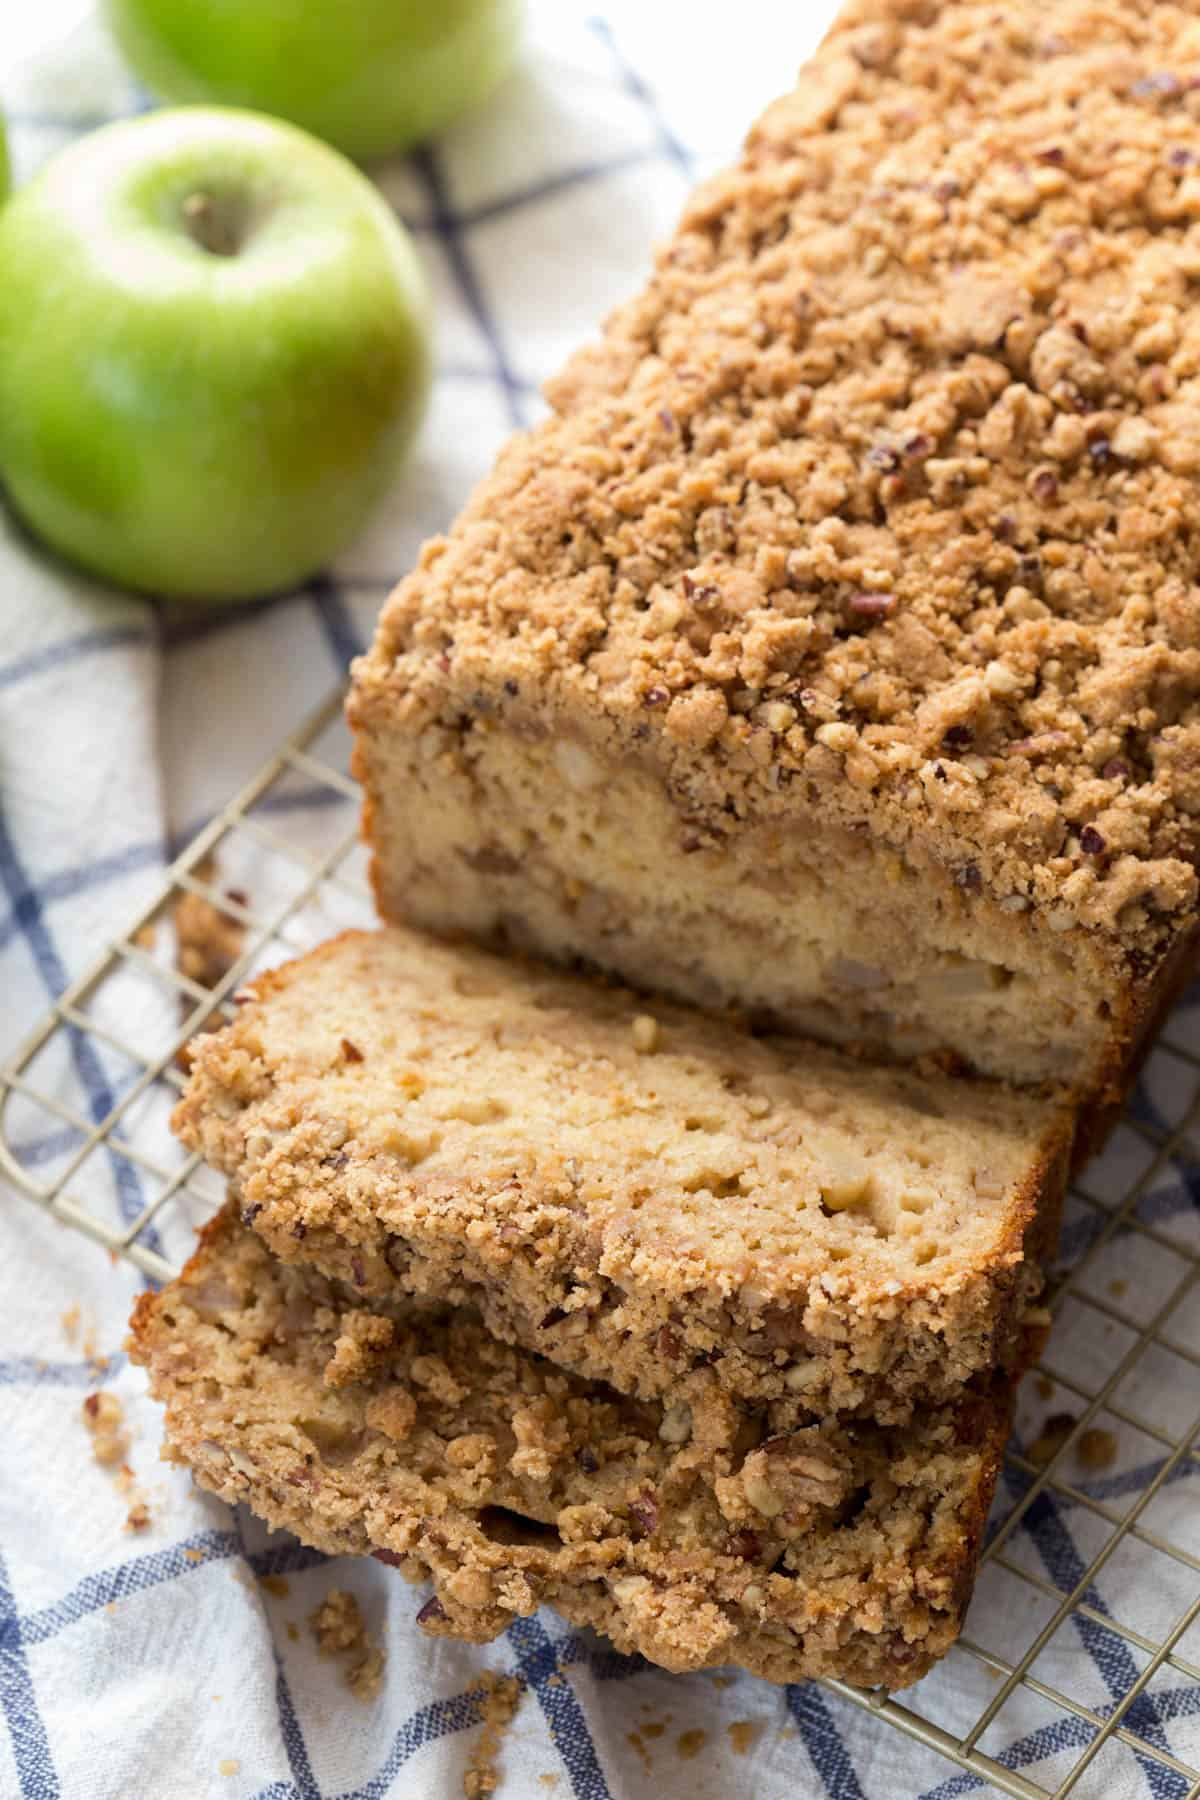 a loaf of apple cinnamon bread with two slices sitting next to it on a baking rack